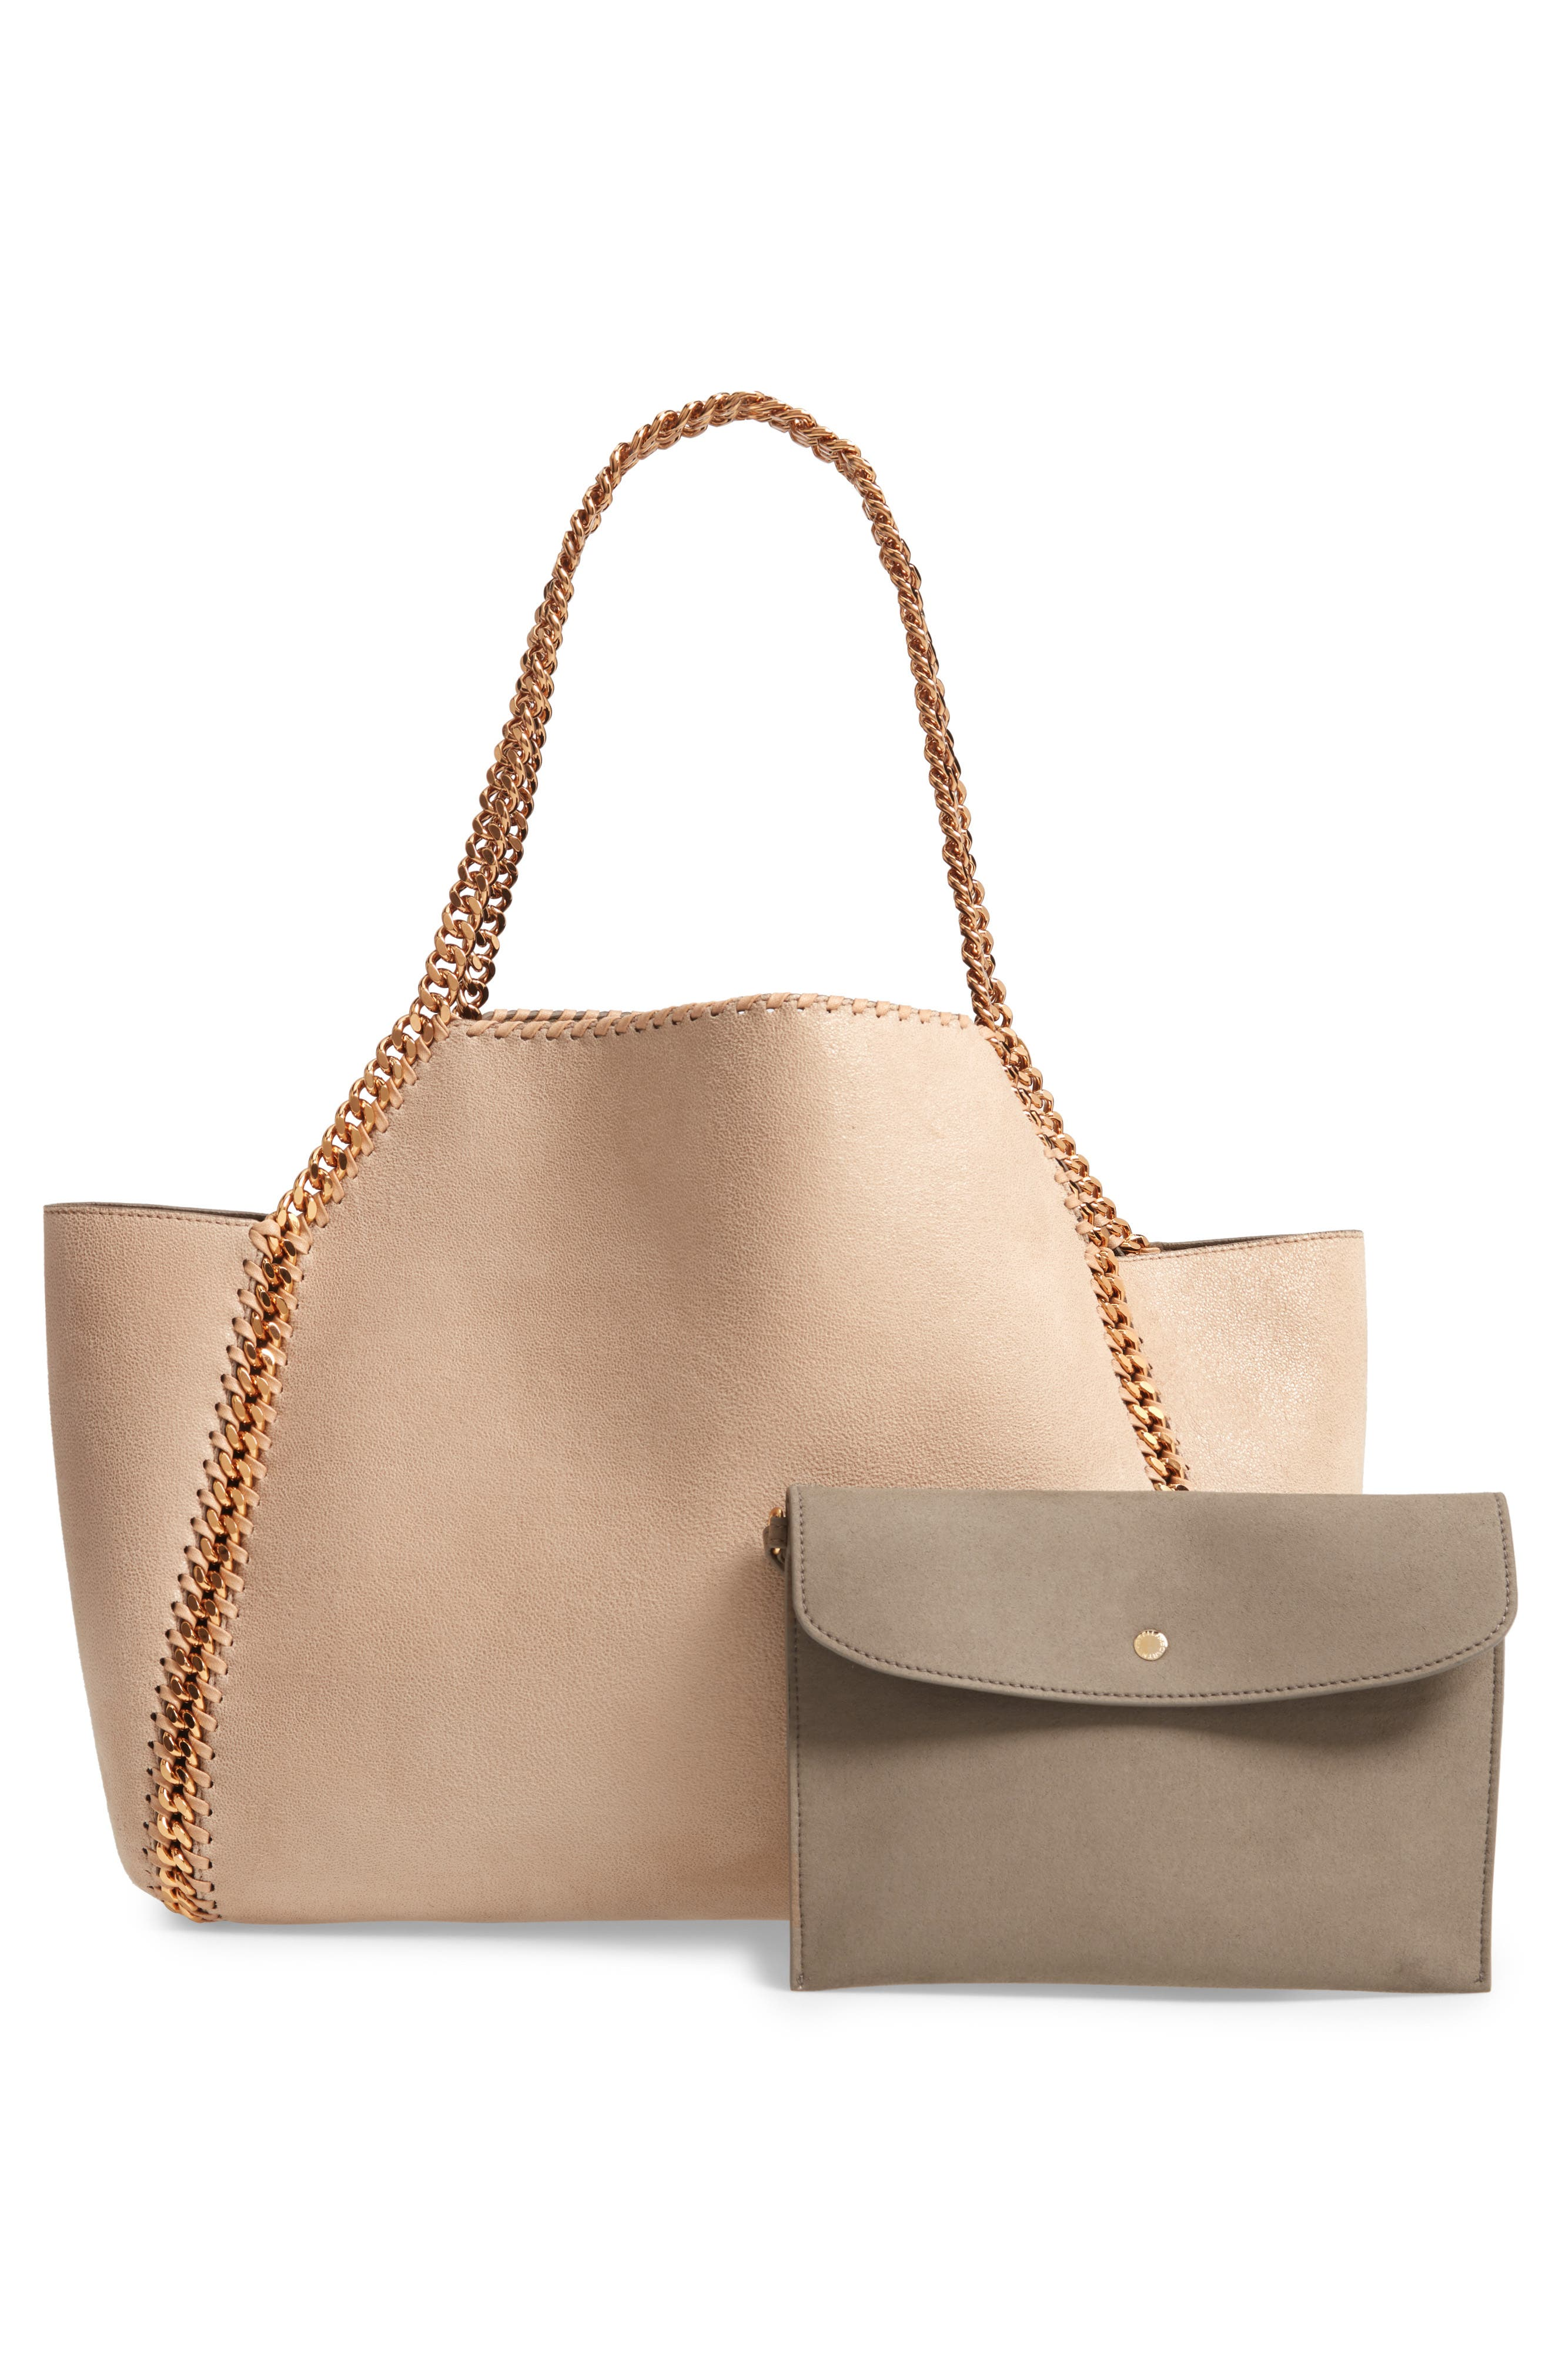 Shaggy Deer Reversible Faux Leather Tote,                             Alternate thumbnail 4, color,                             CLOTTED CREAM